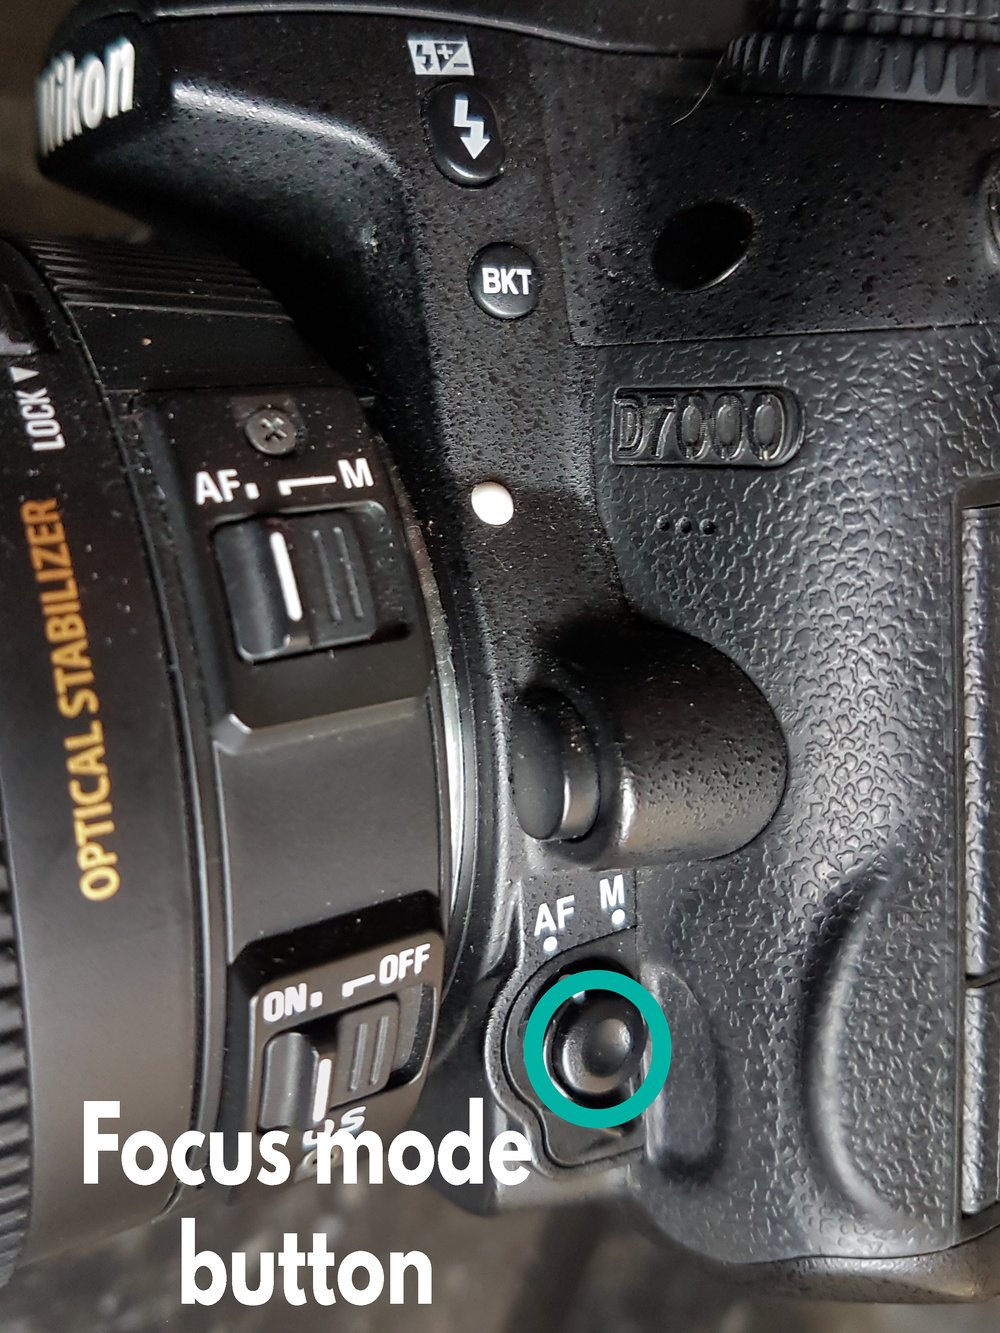 Focus mode button - Press this button in and twist the rear command dial to change focus modes